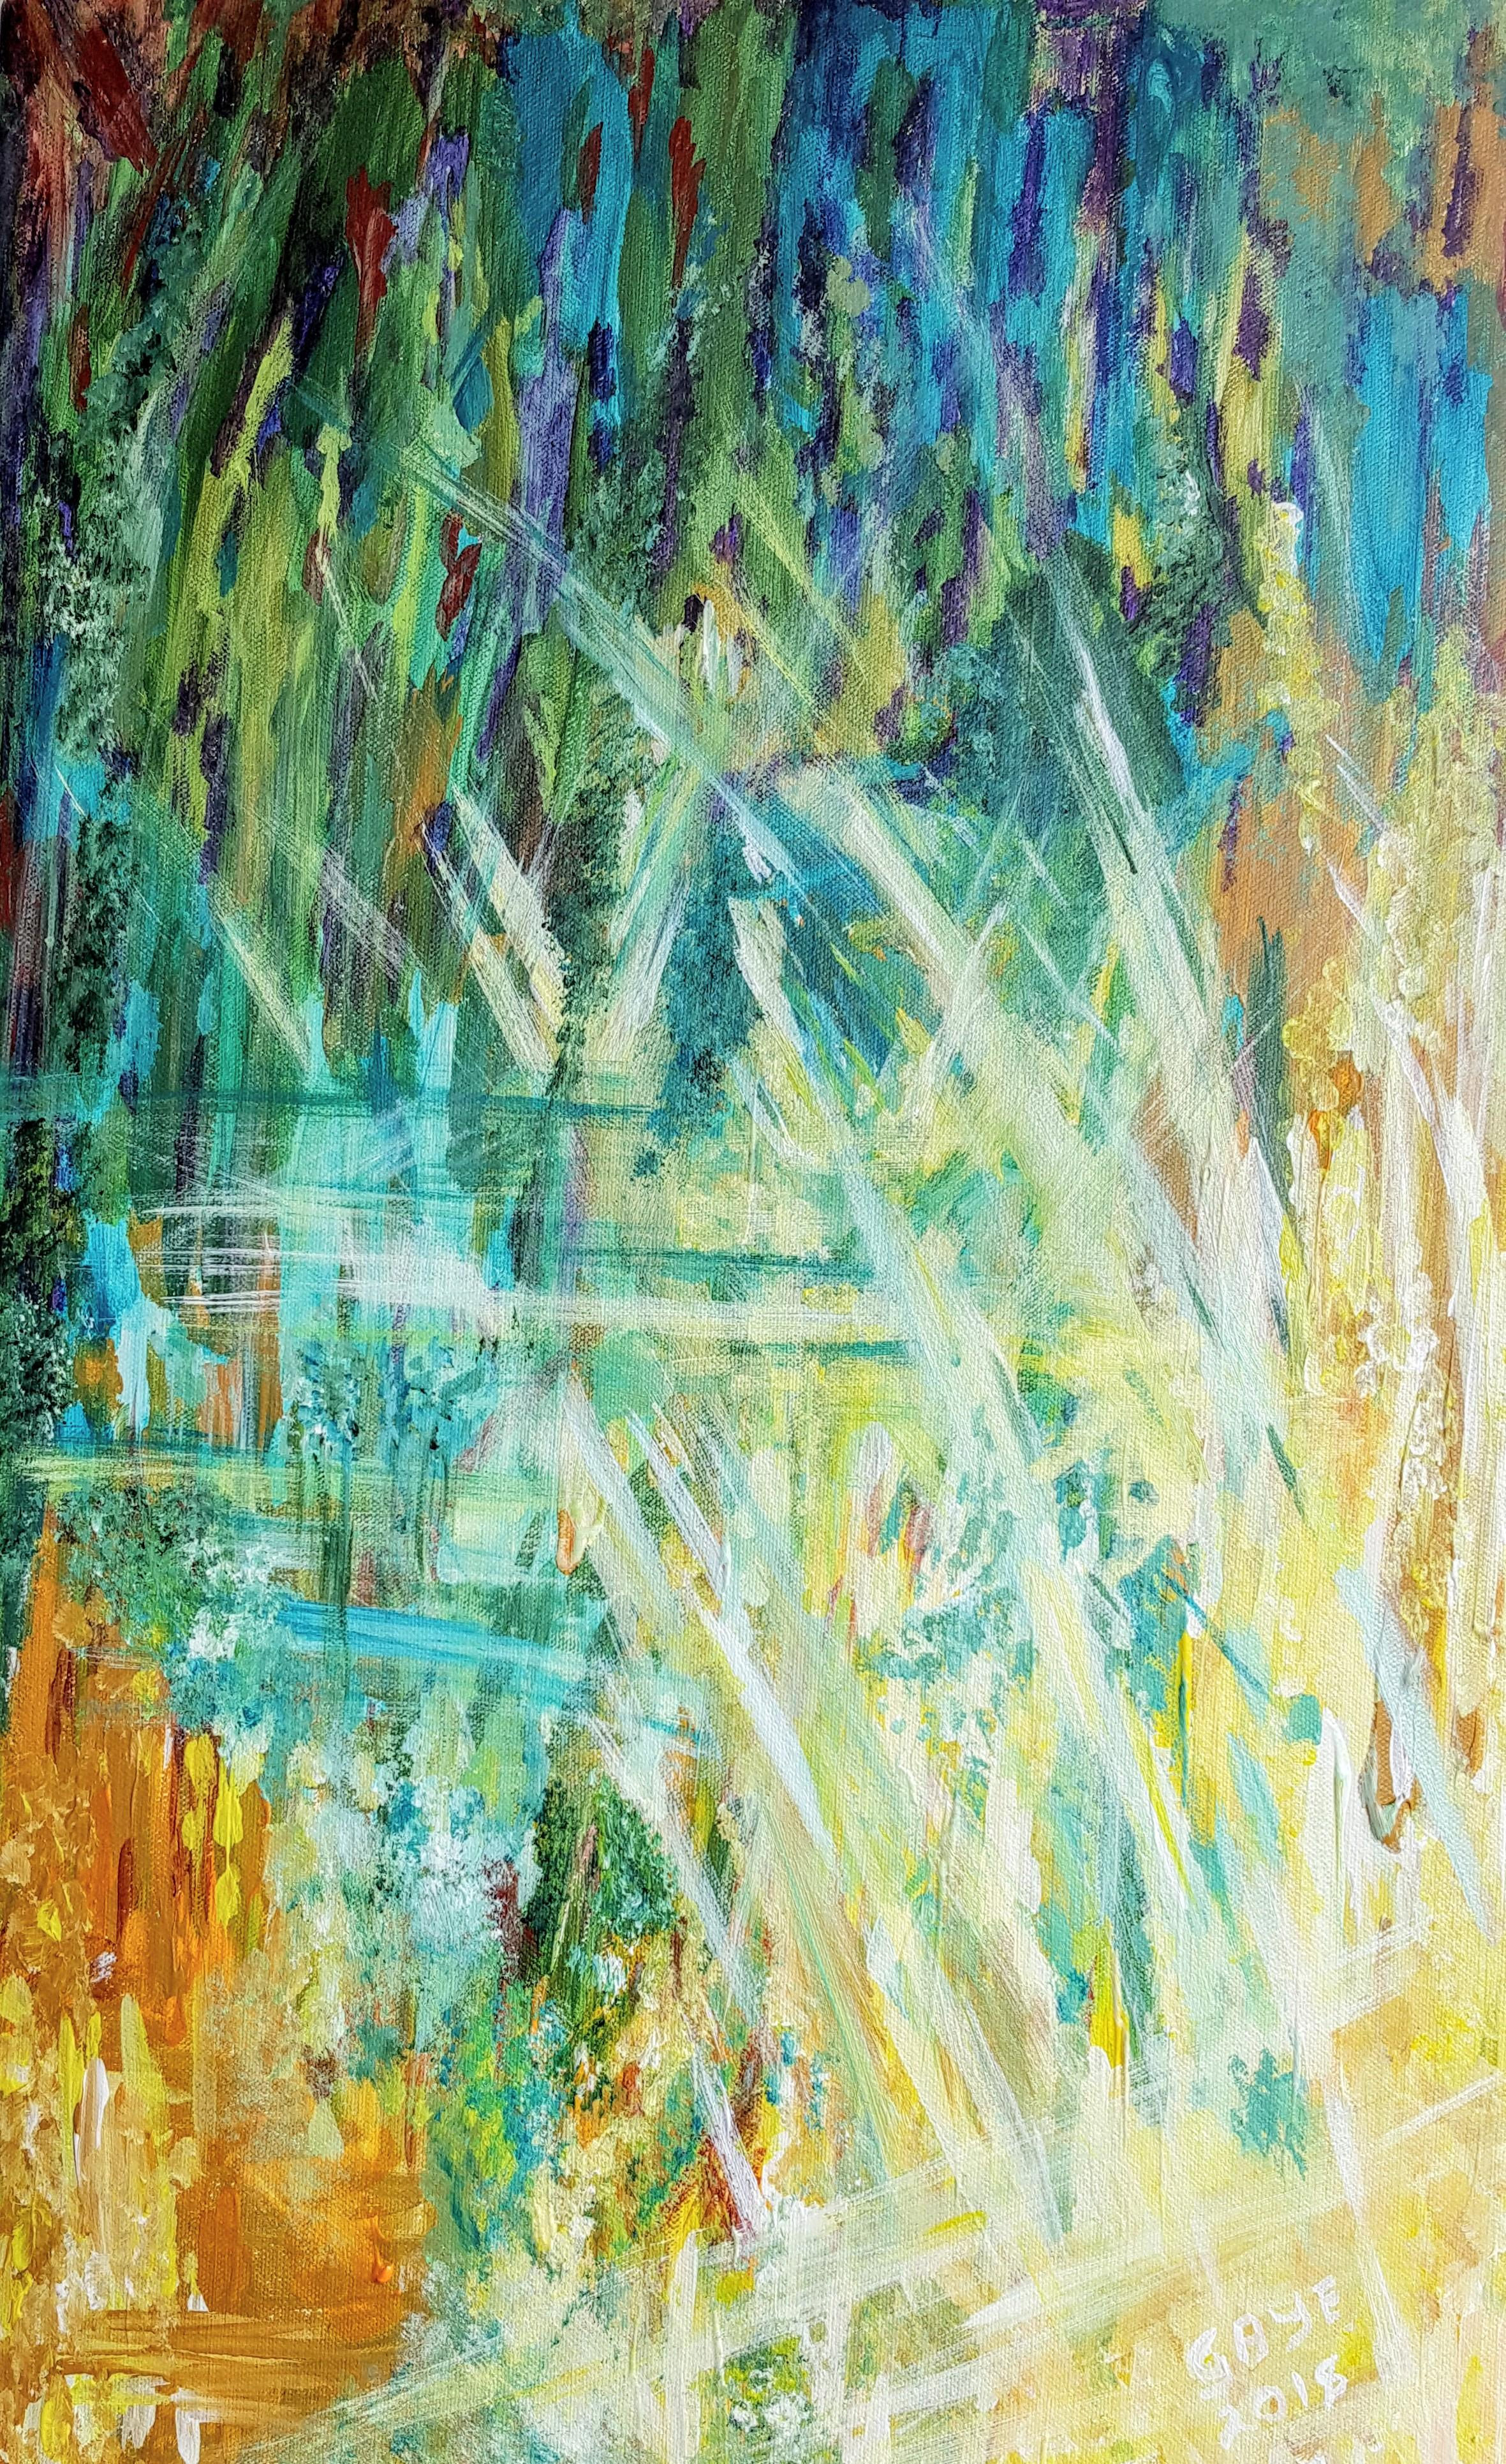 Corn In The Sun:  Contemporary Oil painting